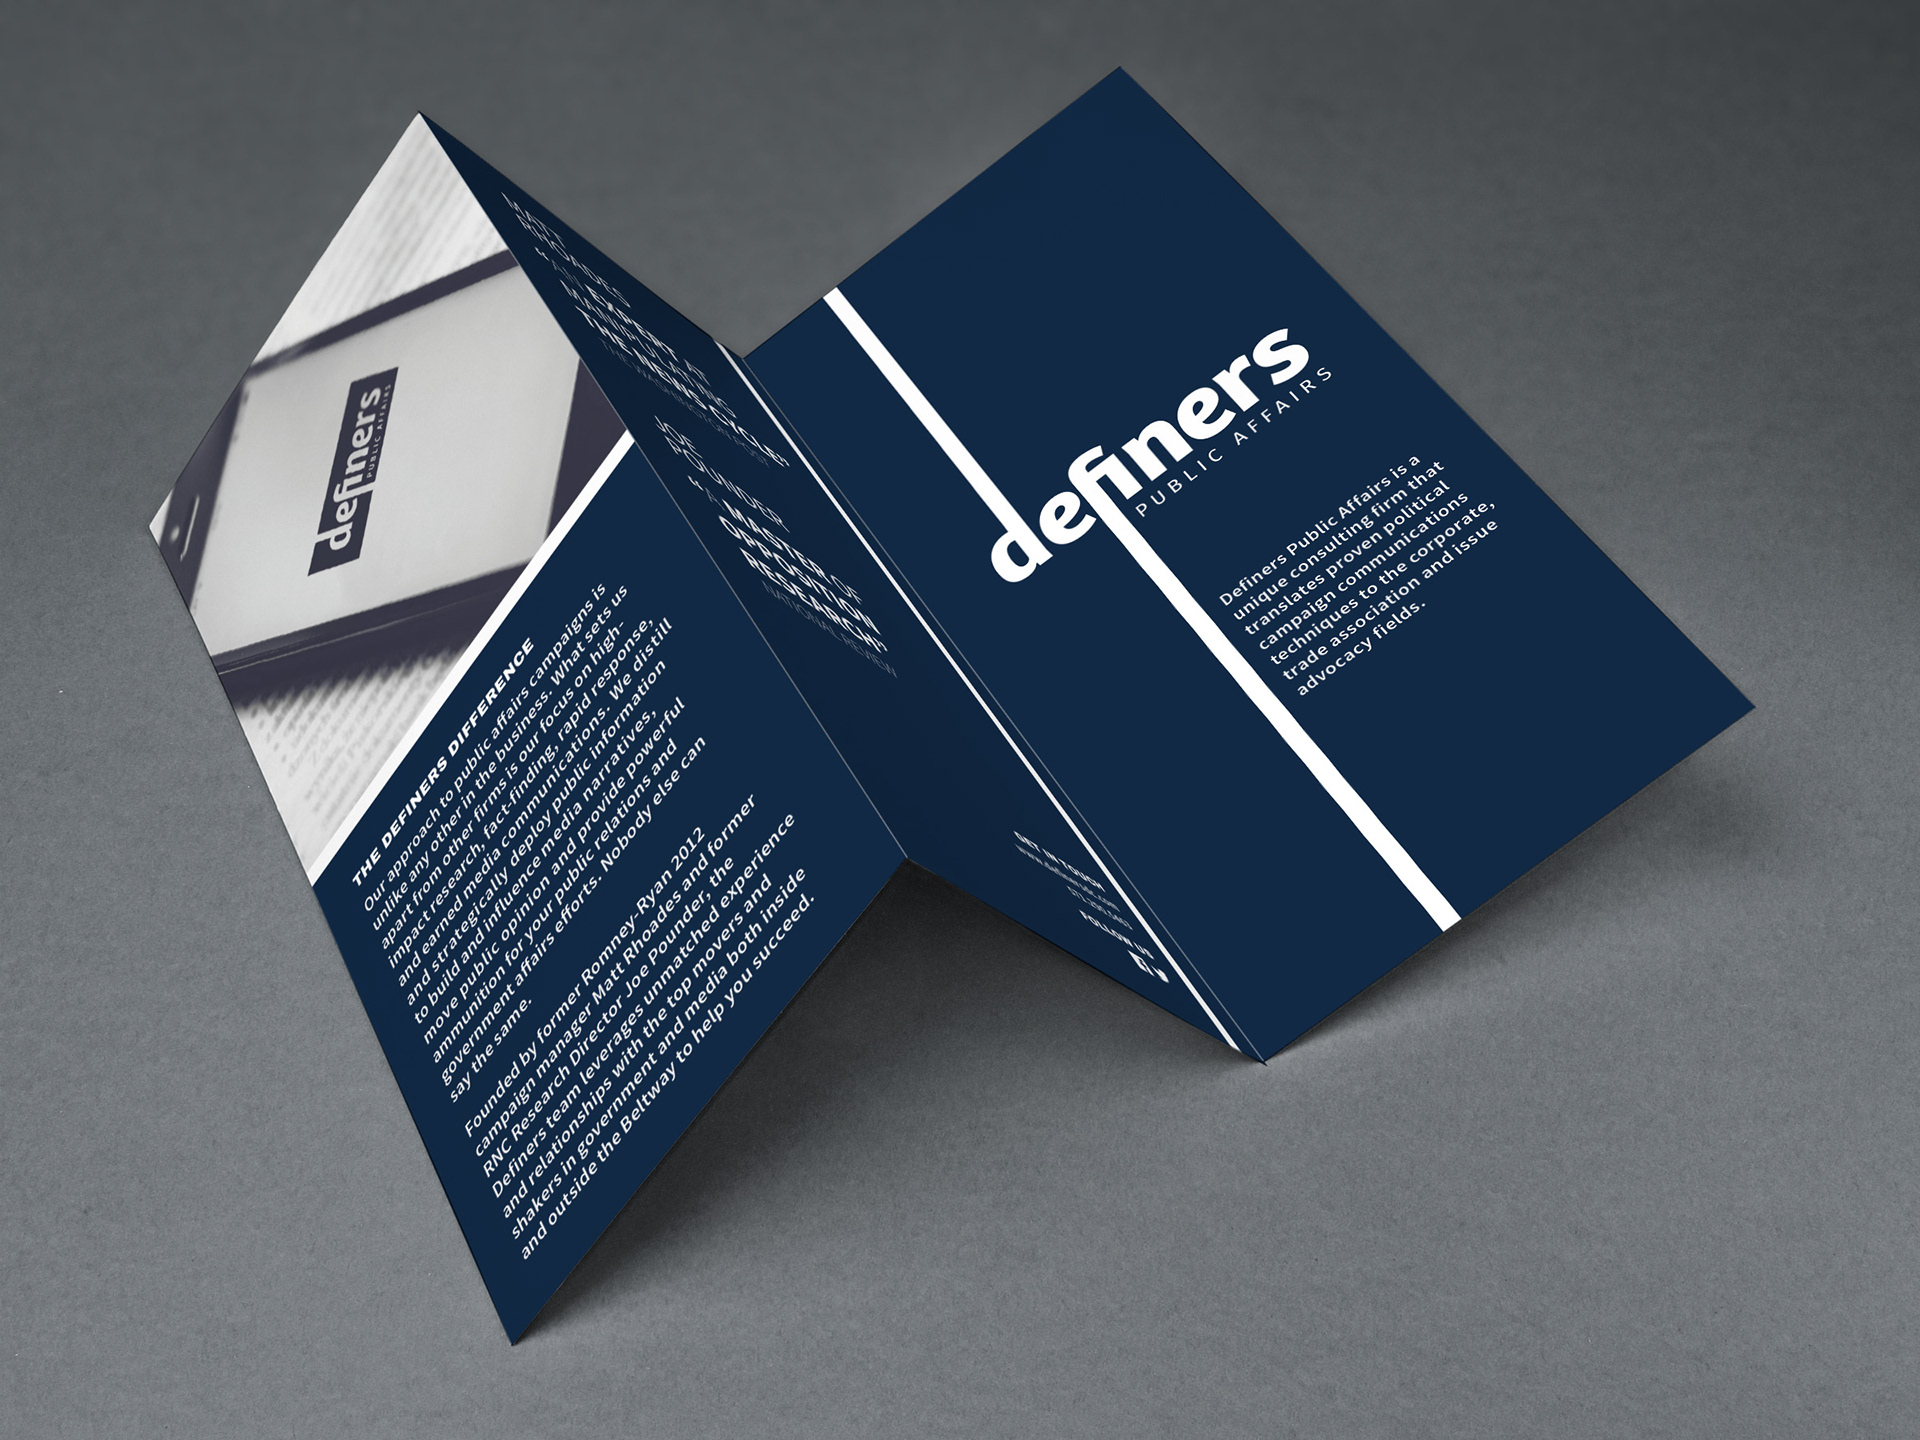 Beautiful photos of political campaign business cards business jasmine sossa from political campaign business cards image source jasminesossa magicingreecefo Images